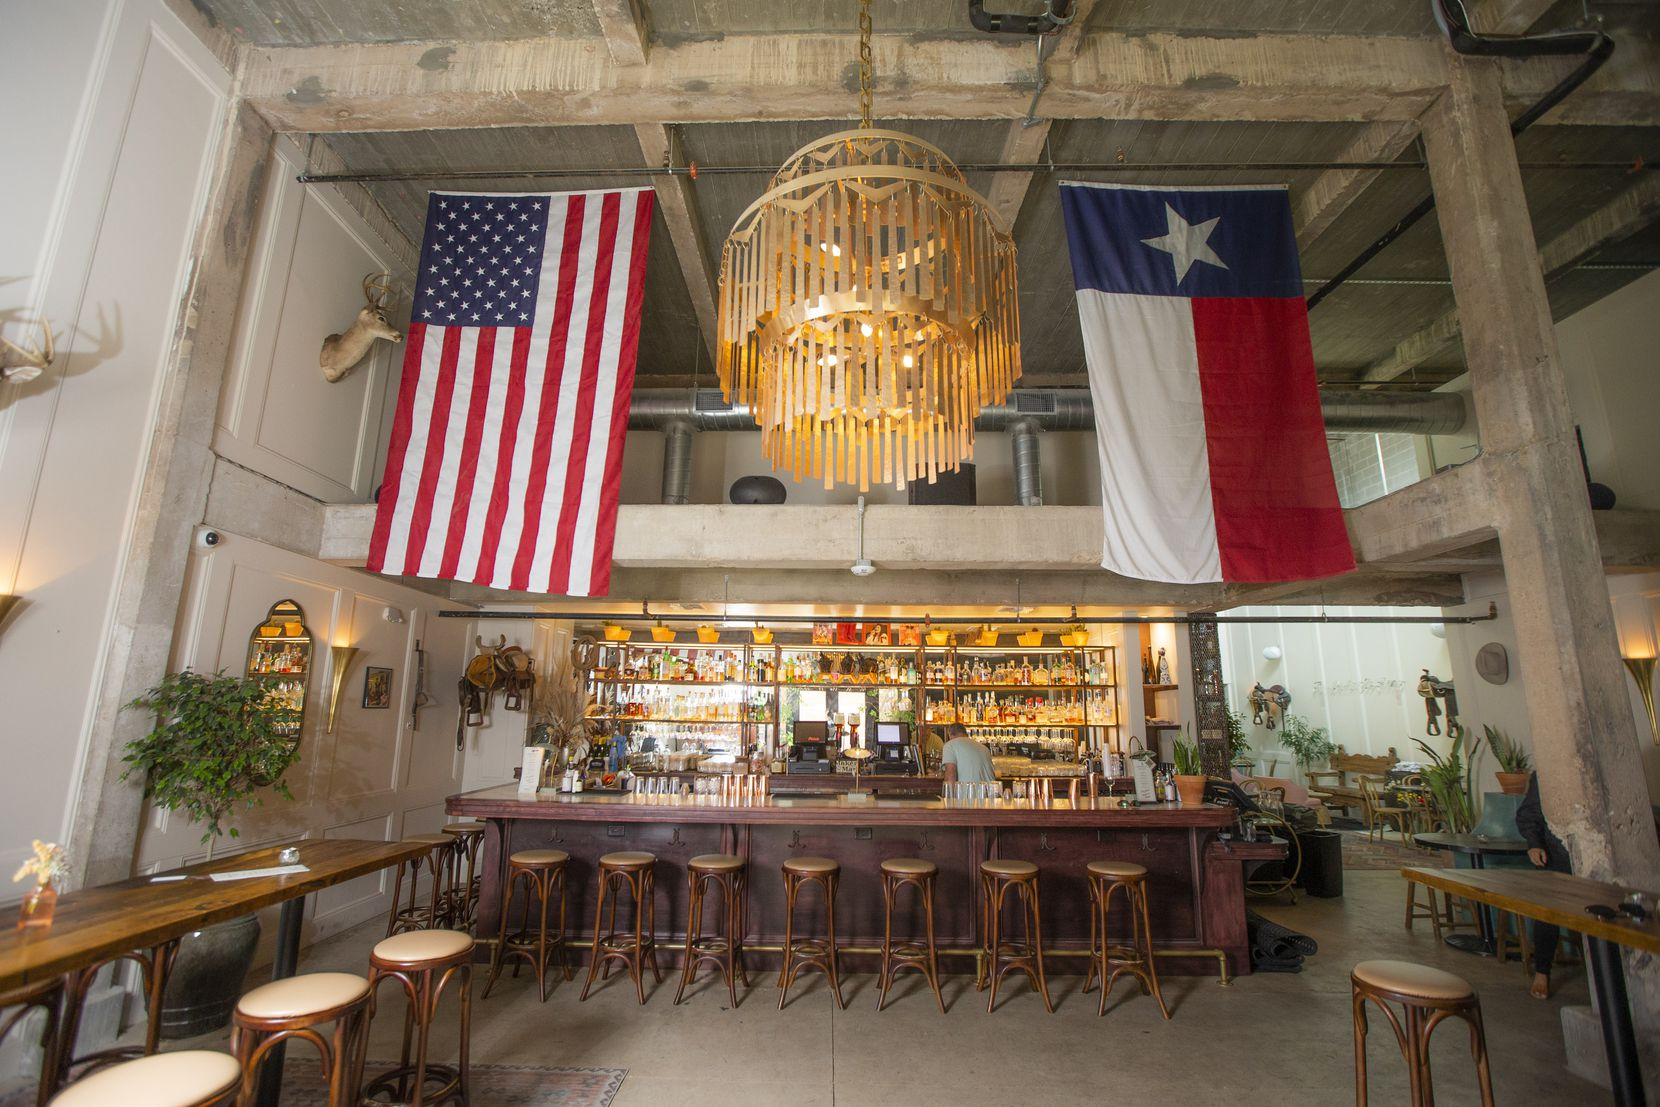 Upon entering, guests are greeted by American and Texan flags hanging over the bar at Side Saddle in the Fort Worth Stockyards